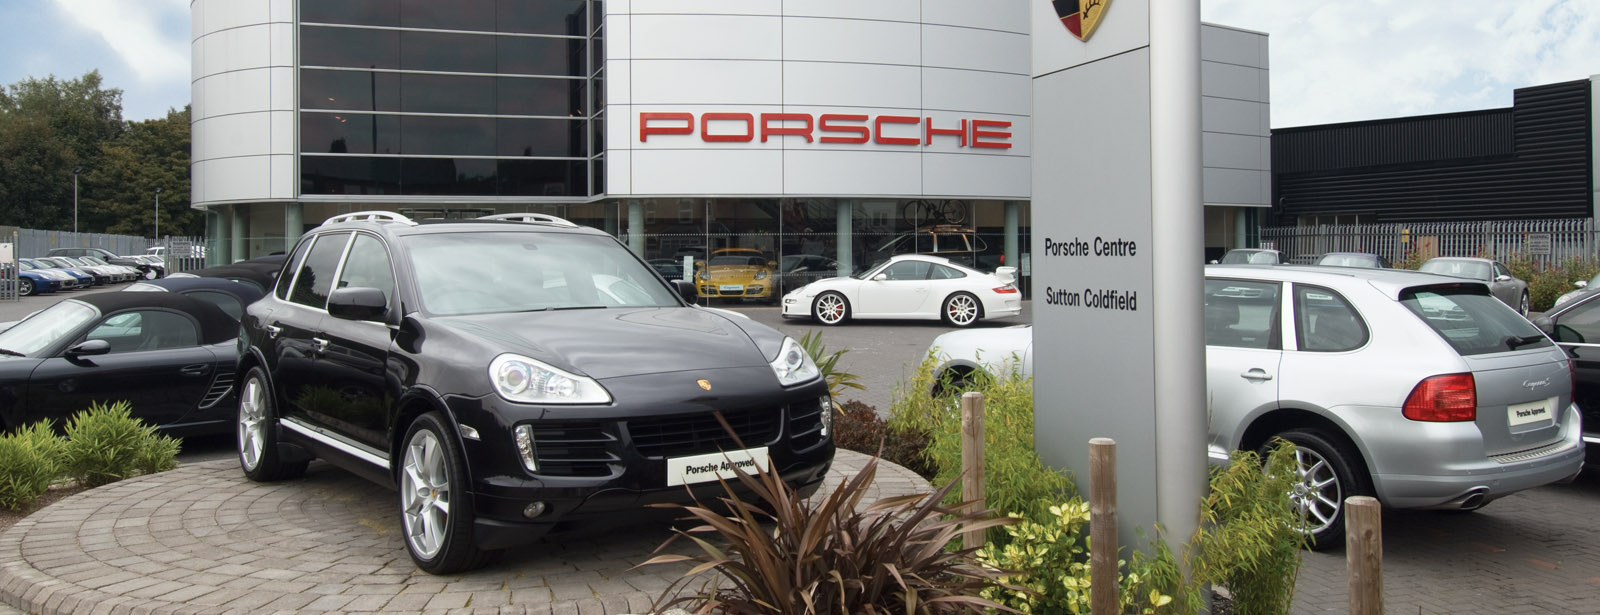 Porsche Centre Sutton Coldfield